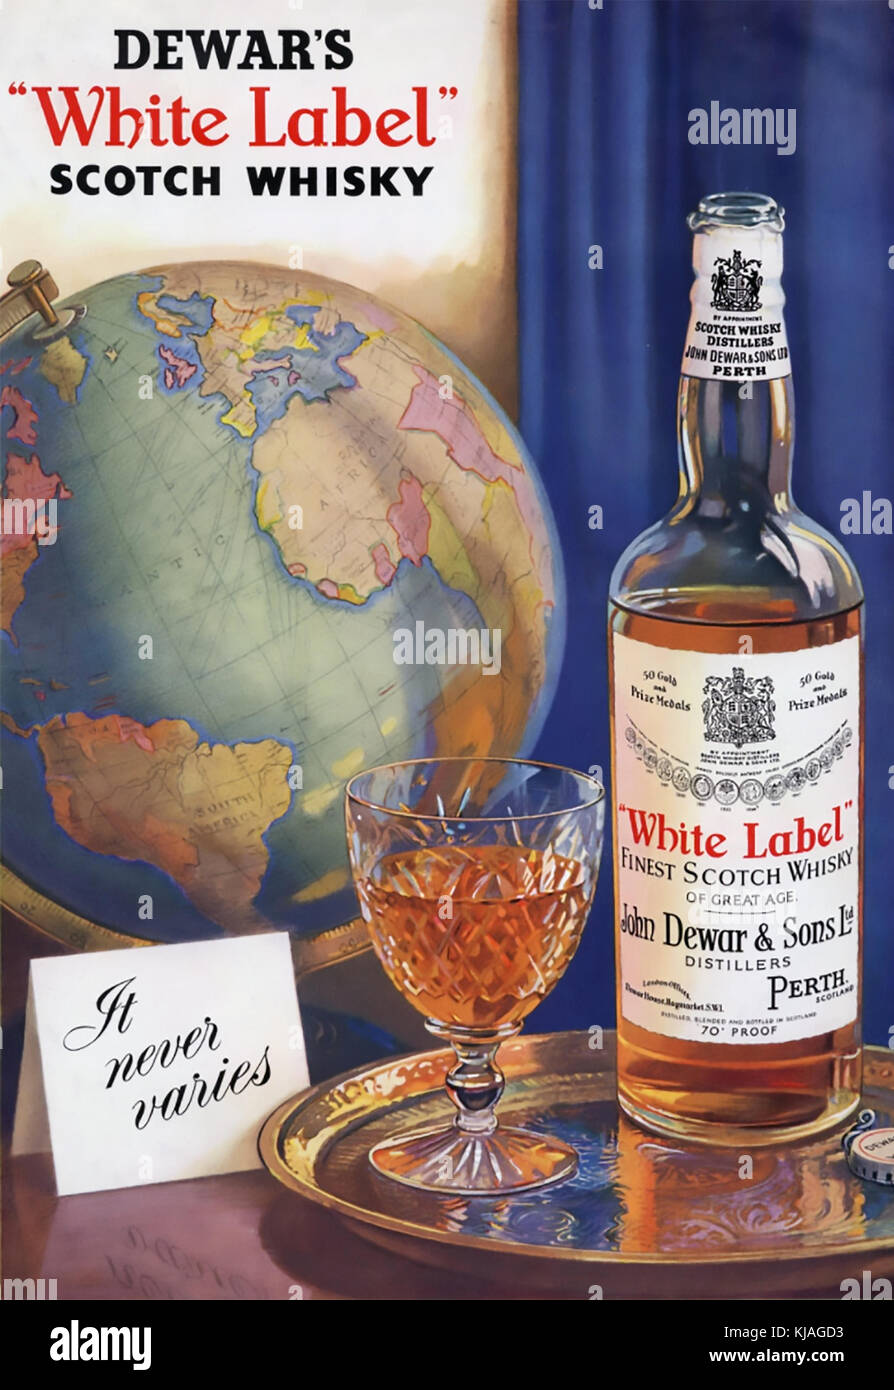 DEWARS WHITE LABEL WHISKY advert about 1950 - Stock Image